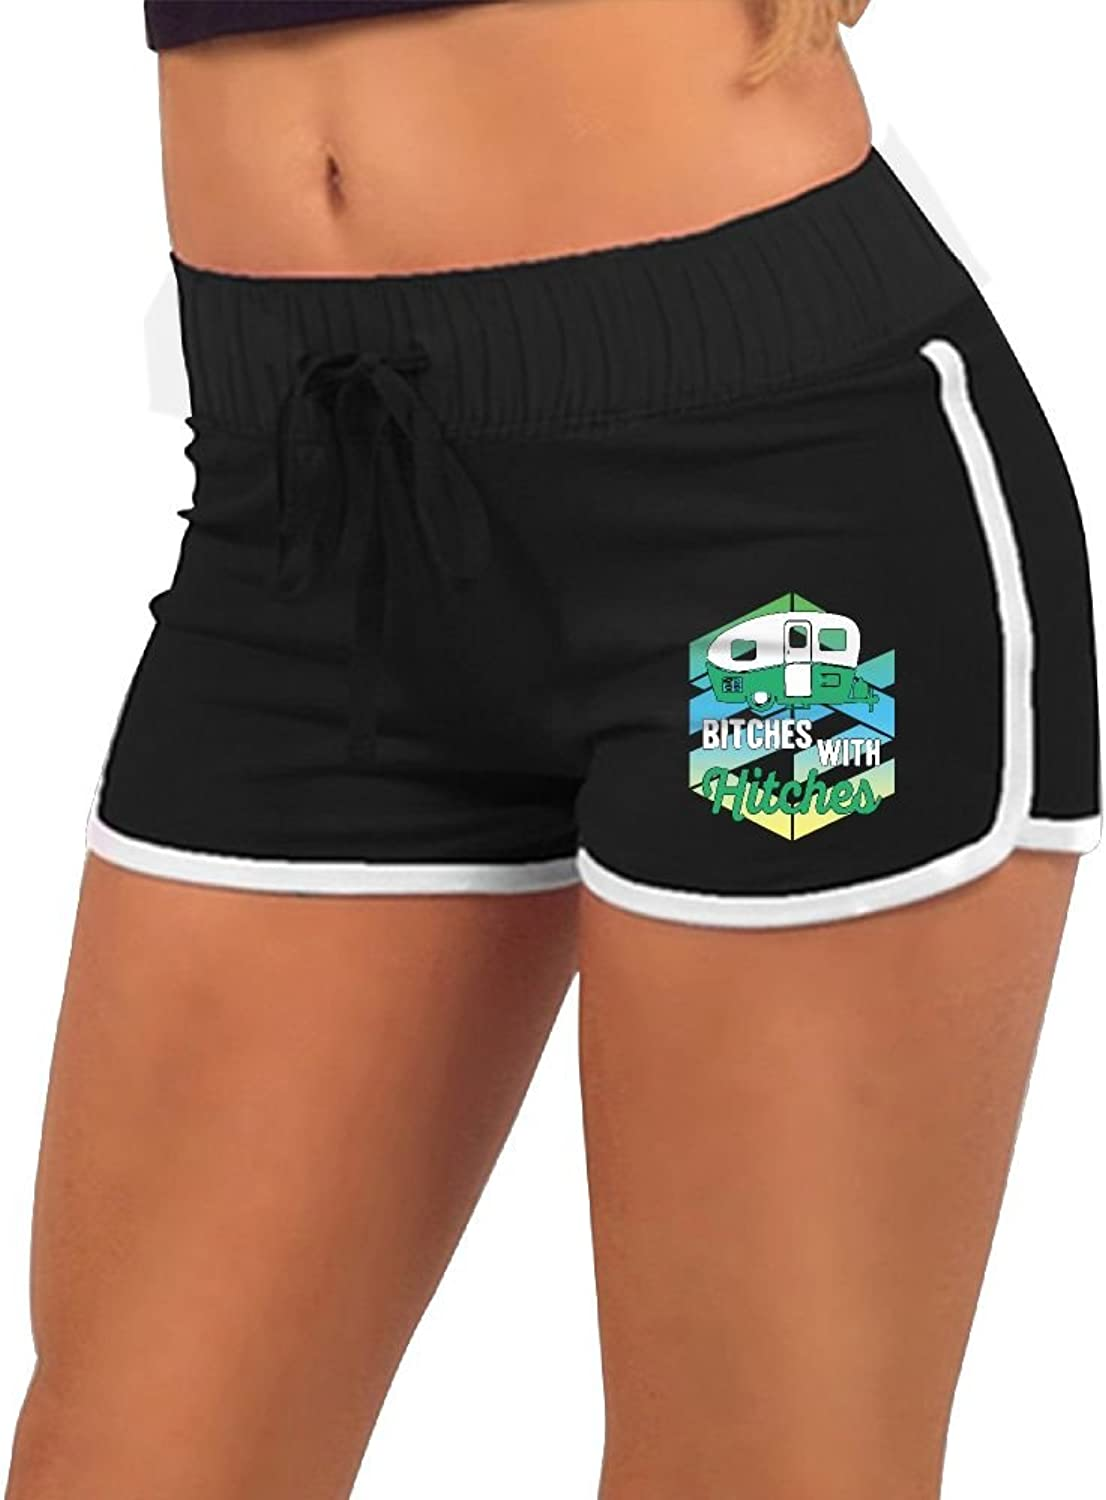 Bitches with Hitches Women's Sports Pants Running Short Gym Yoga Dolphin Shorts